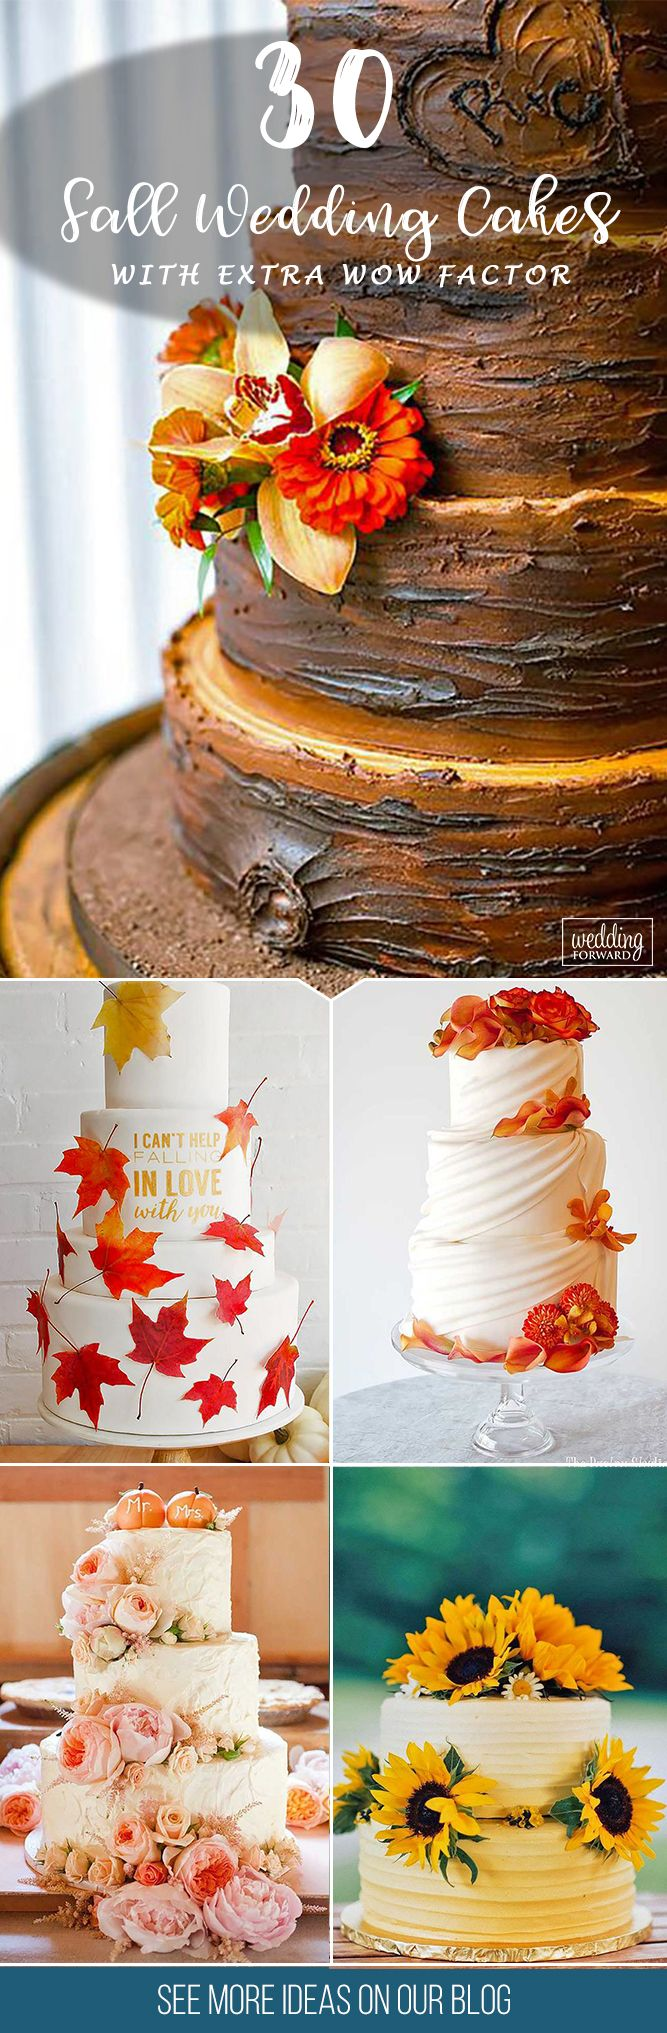 30 Fall Wedding Cakes That WOW ❤  Fall wedding cakes with fruits and golden leaves make a connection with autumn season. See more: http://www.weddingforward.com/fall-wedding-cakes/ #weddings #cakes